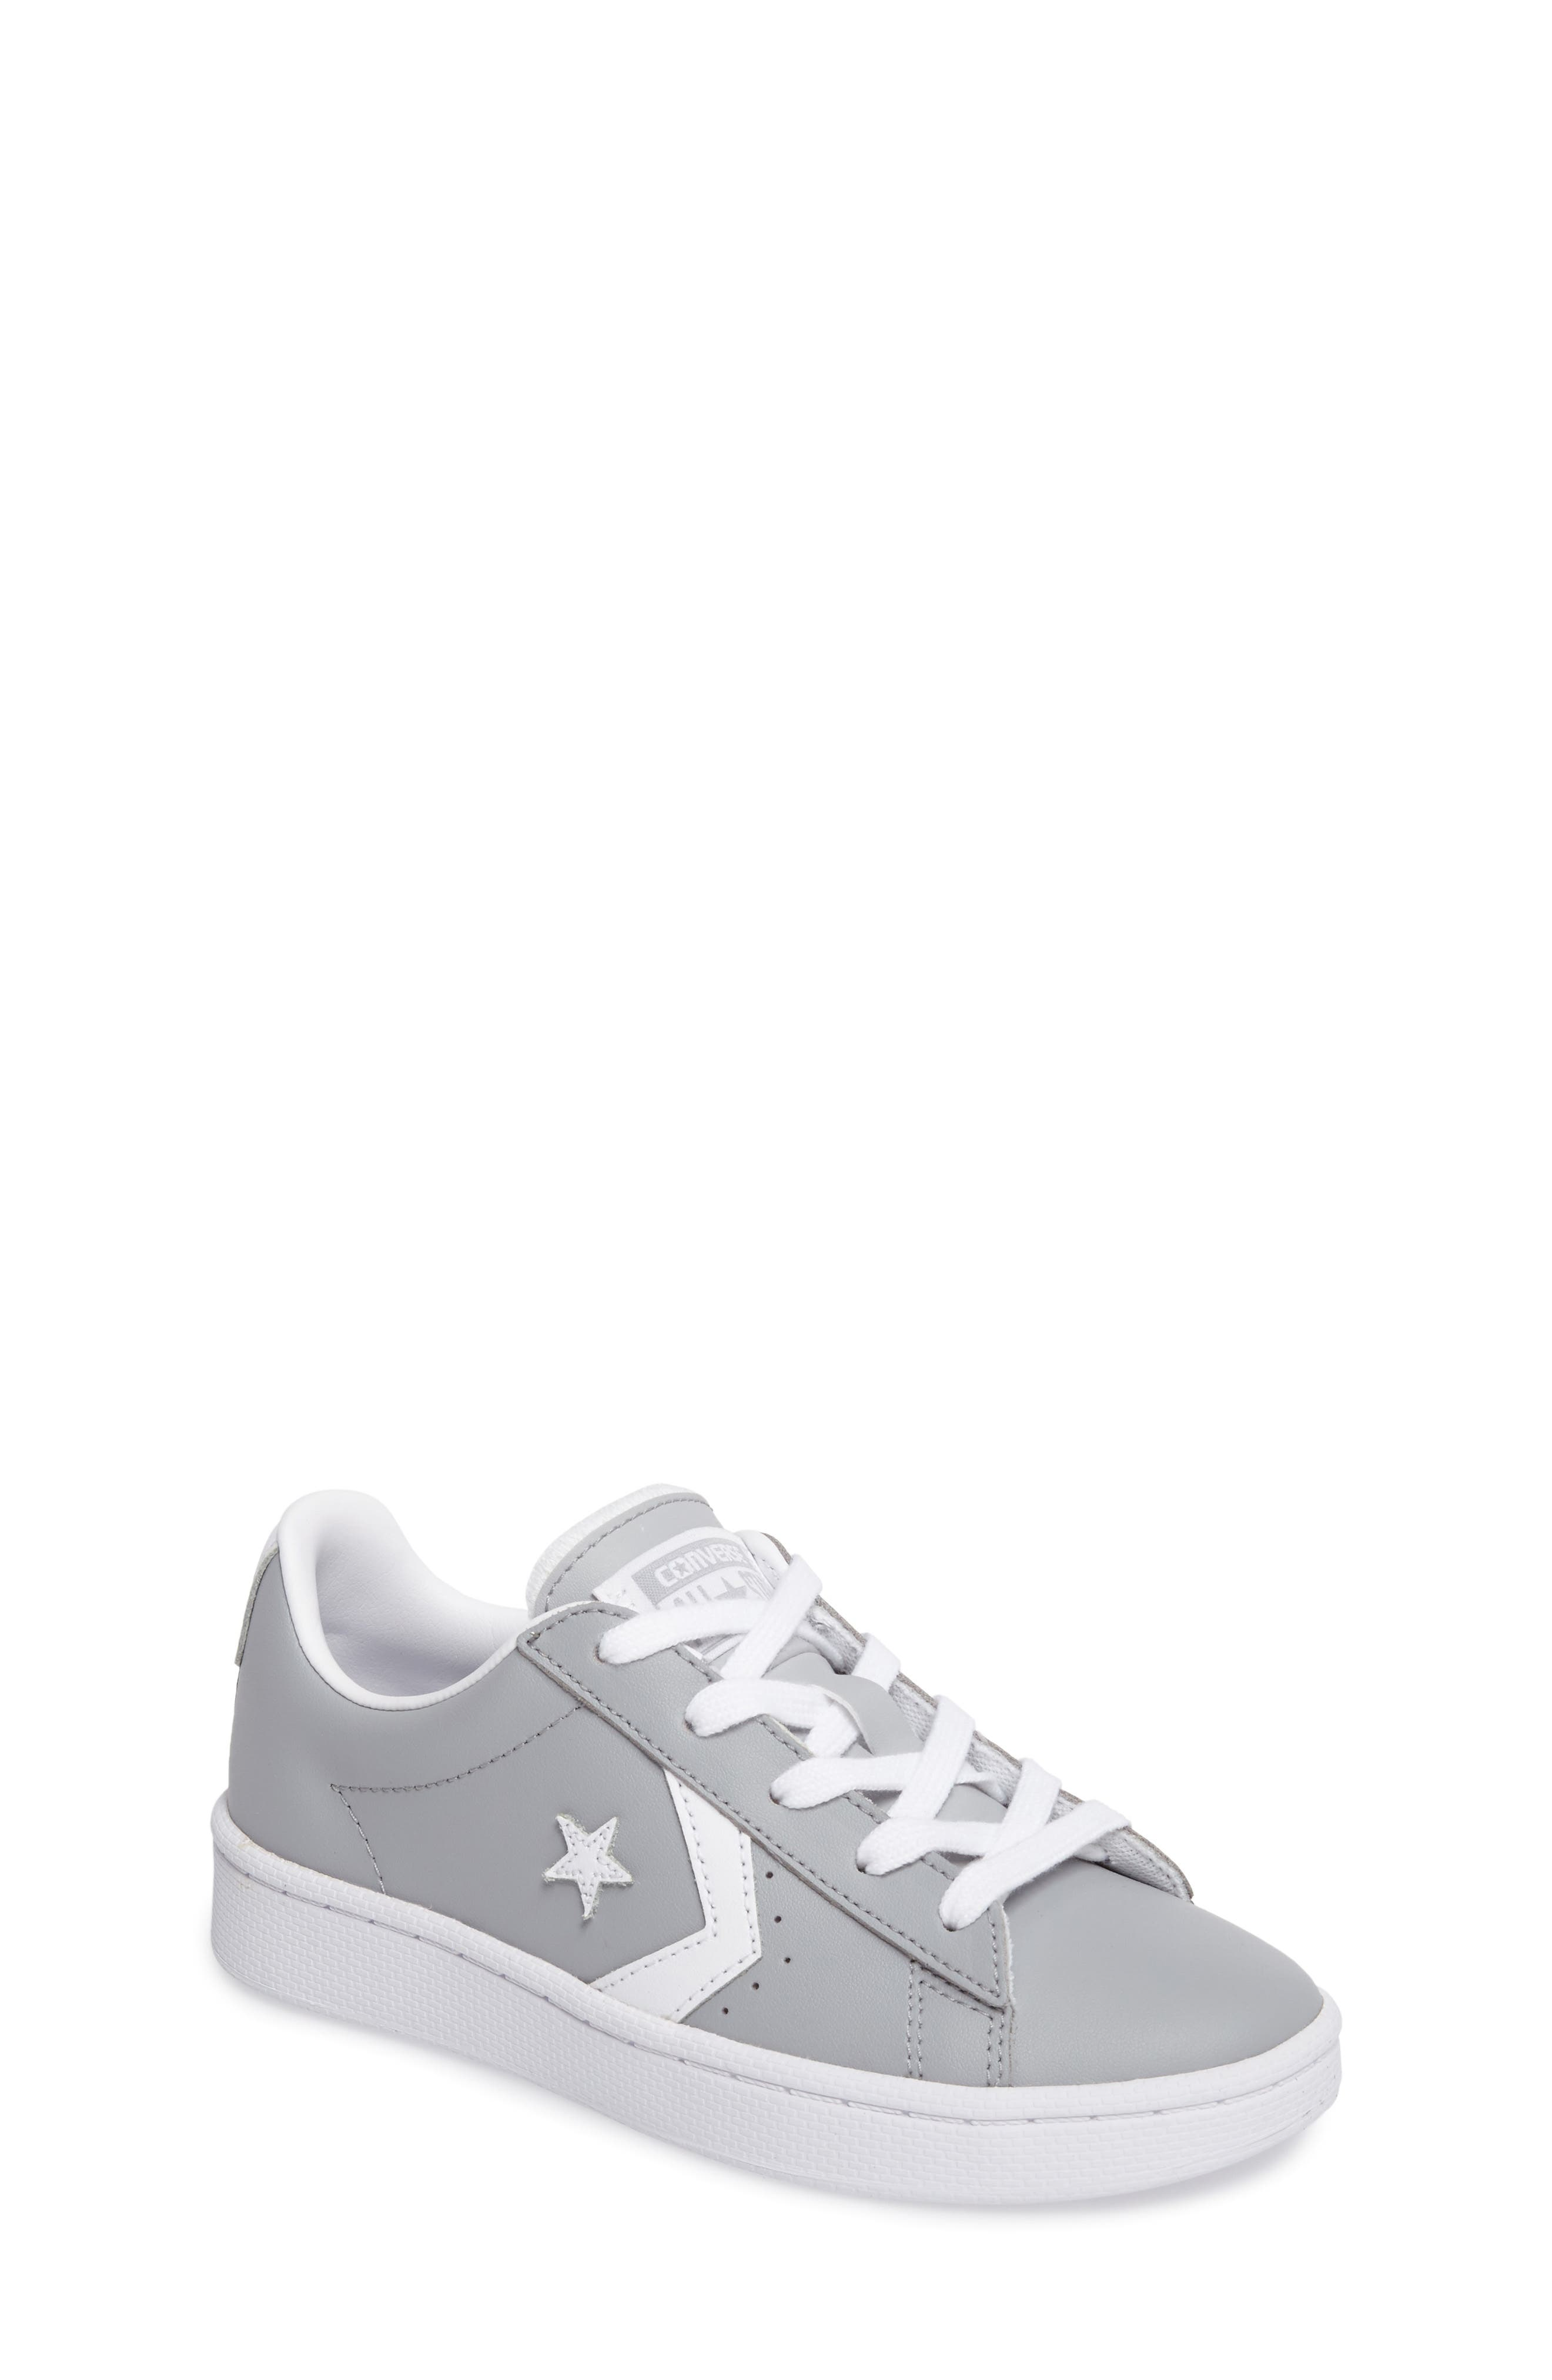 All Star<sup>®</sup> Pro Leather Low Top Sneaker,                             Main thumbnail 1, color,                             Wolf Grey